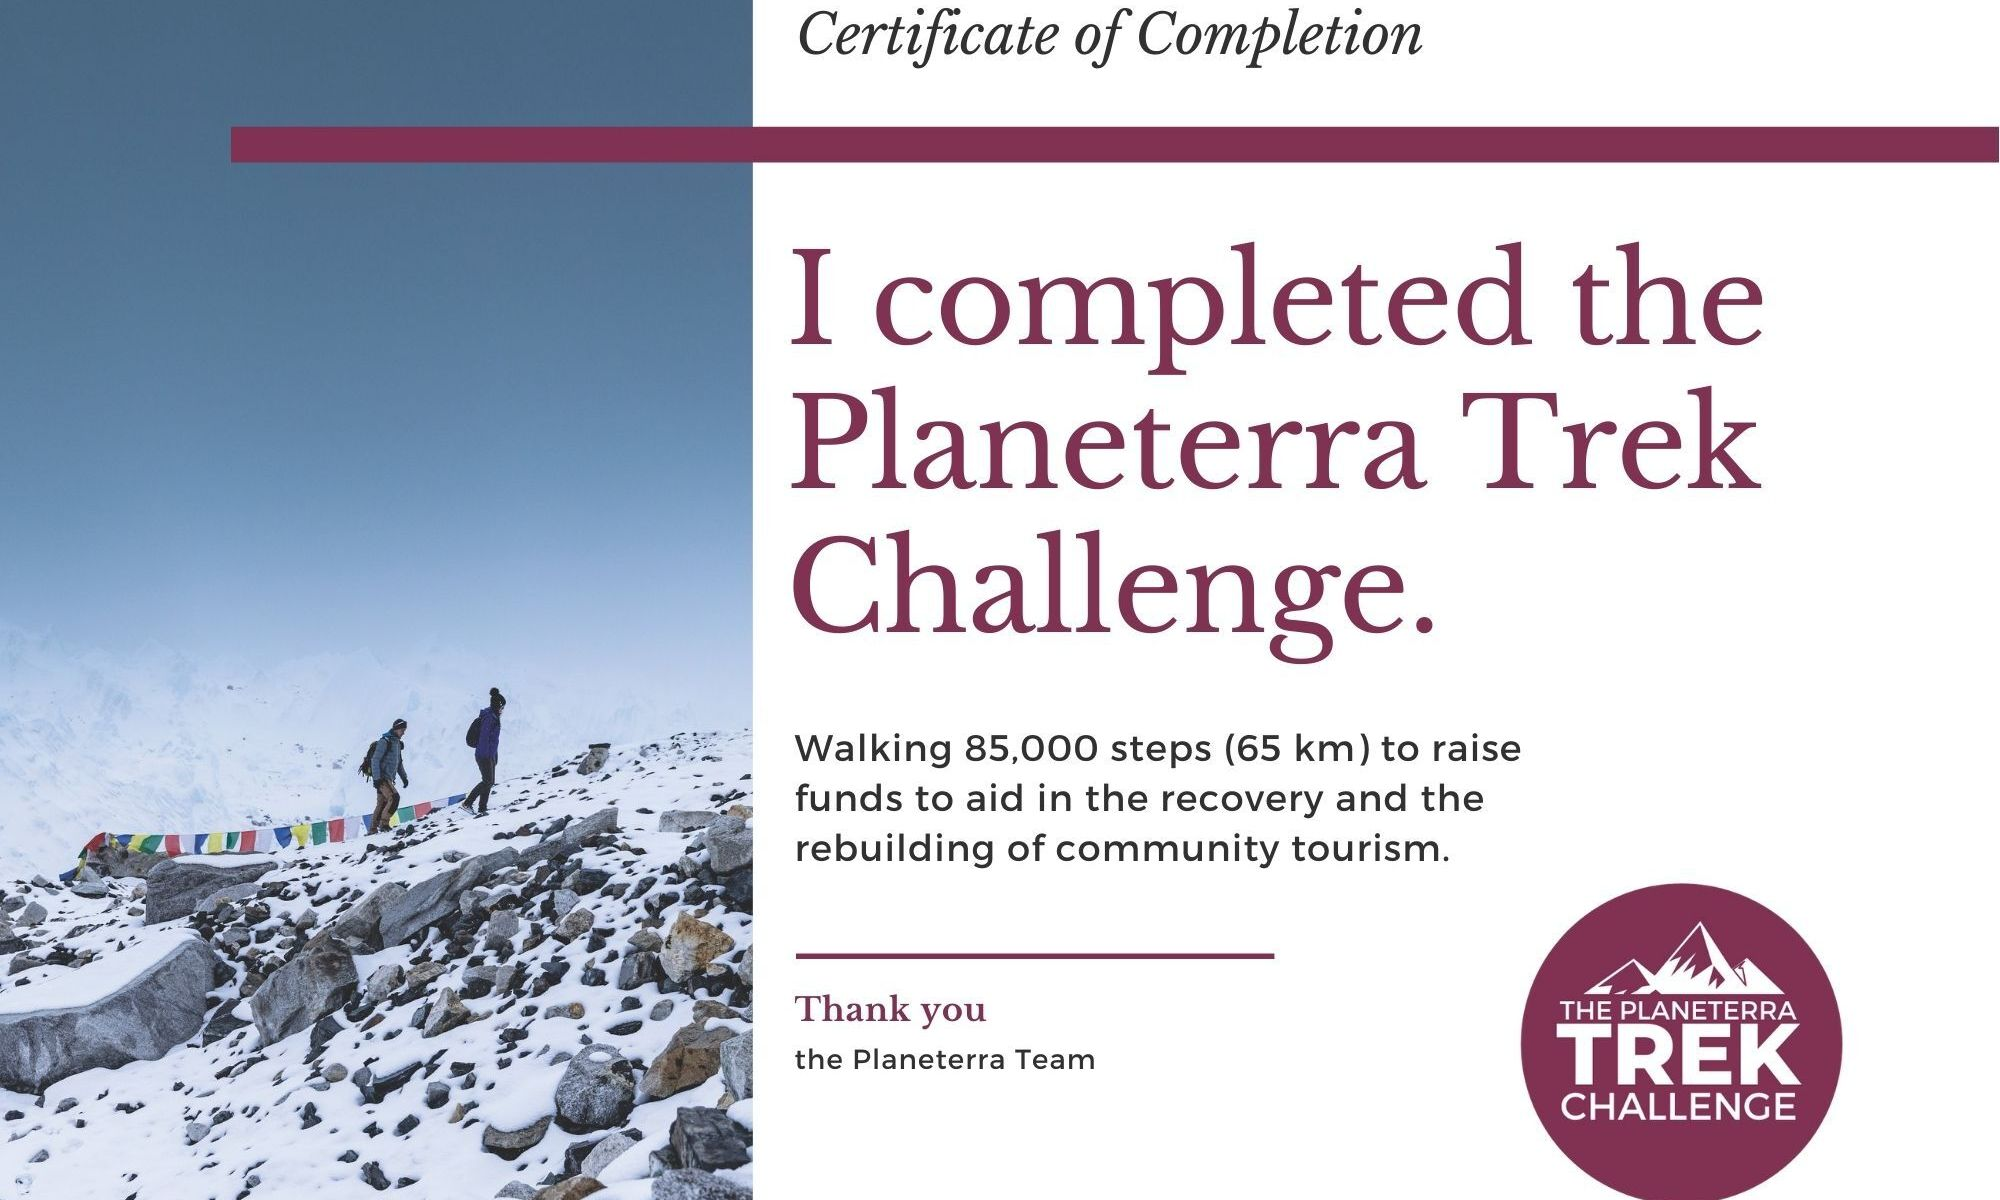 K in Motion Travel Blog. Ups and Downs of the Planeterra Trek Challenge. Certificate